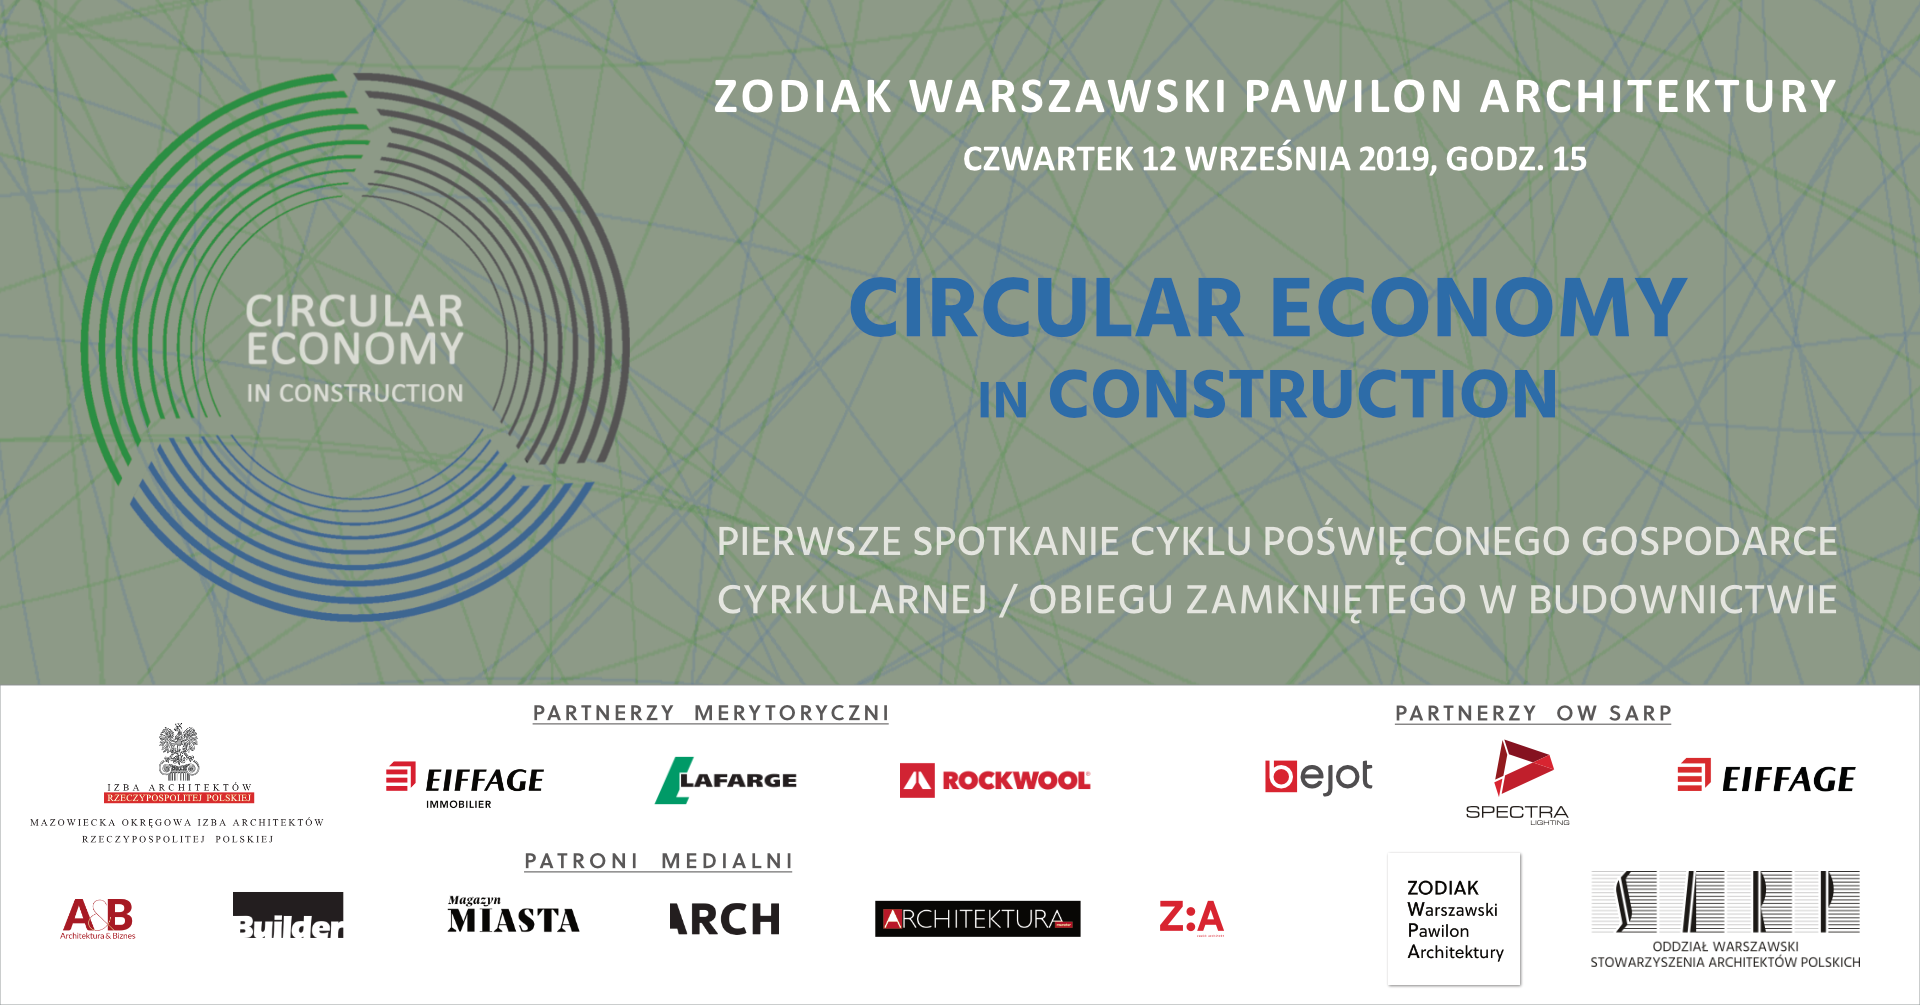 CIRCULAR ECONOMY IN CONSTRUCTION